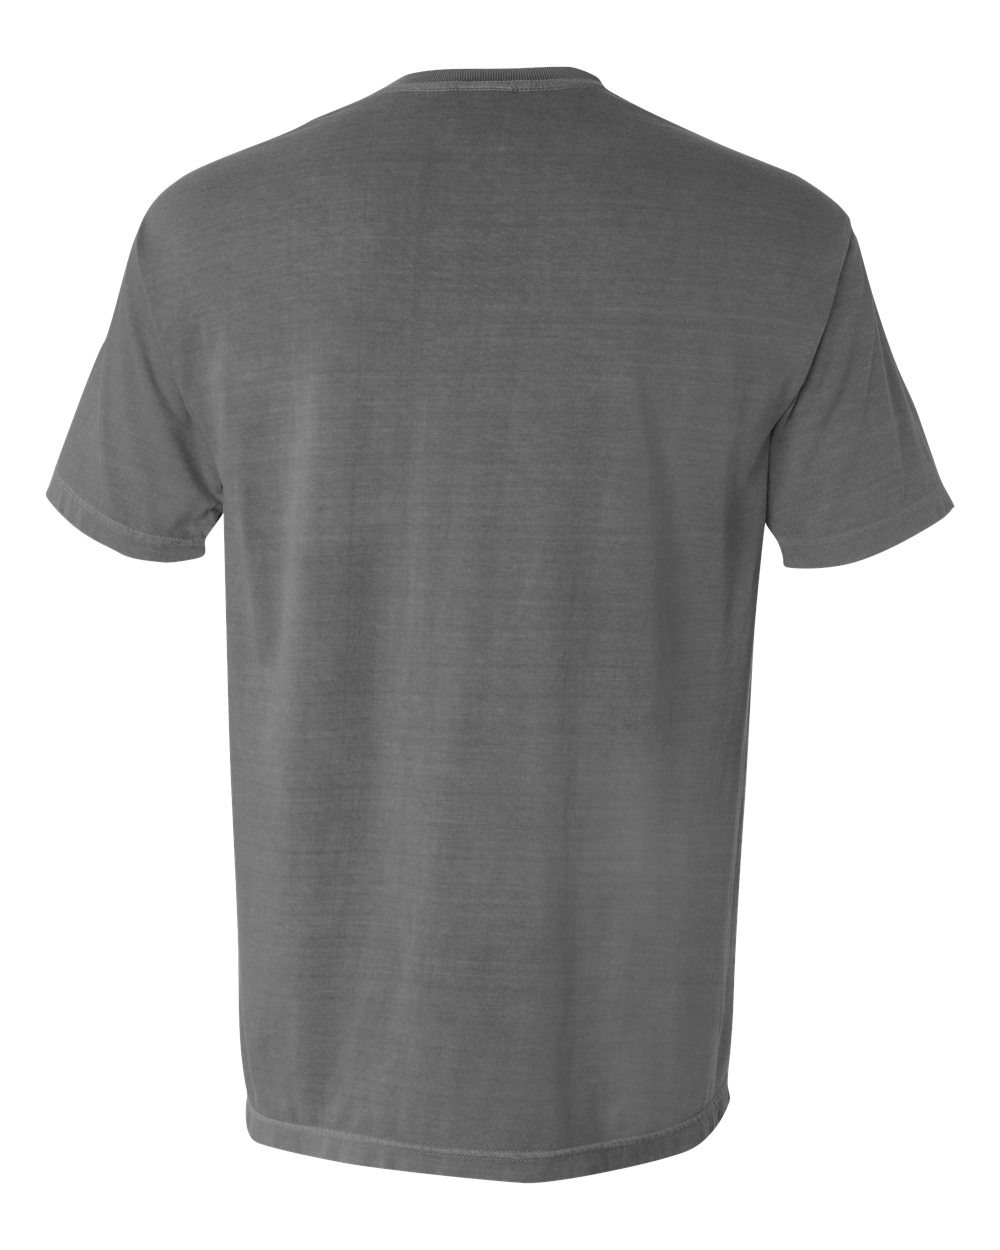 Comfort-Colors-Men-039-s-6-1-oz-Garment-Dyed-Pocket-T-Shirt-6030CC-S-3XL thumbnail 43